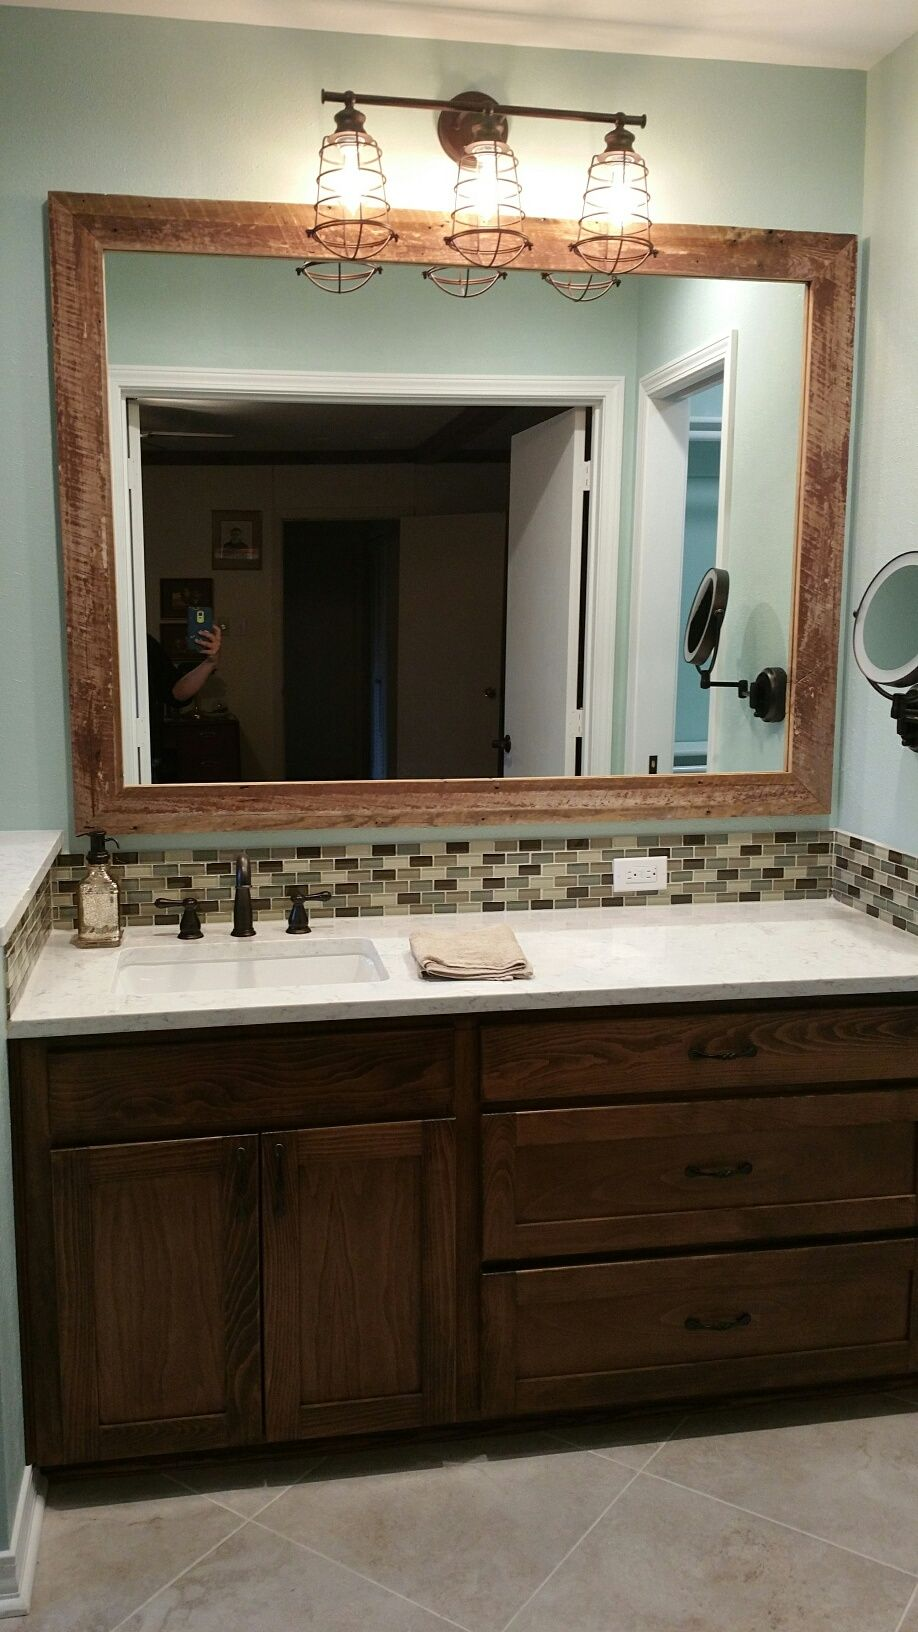 Remodeled Traditional Bathrooms a hint of rustic in a traditional bathroom remodel. minuet quartz